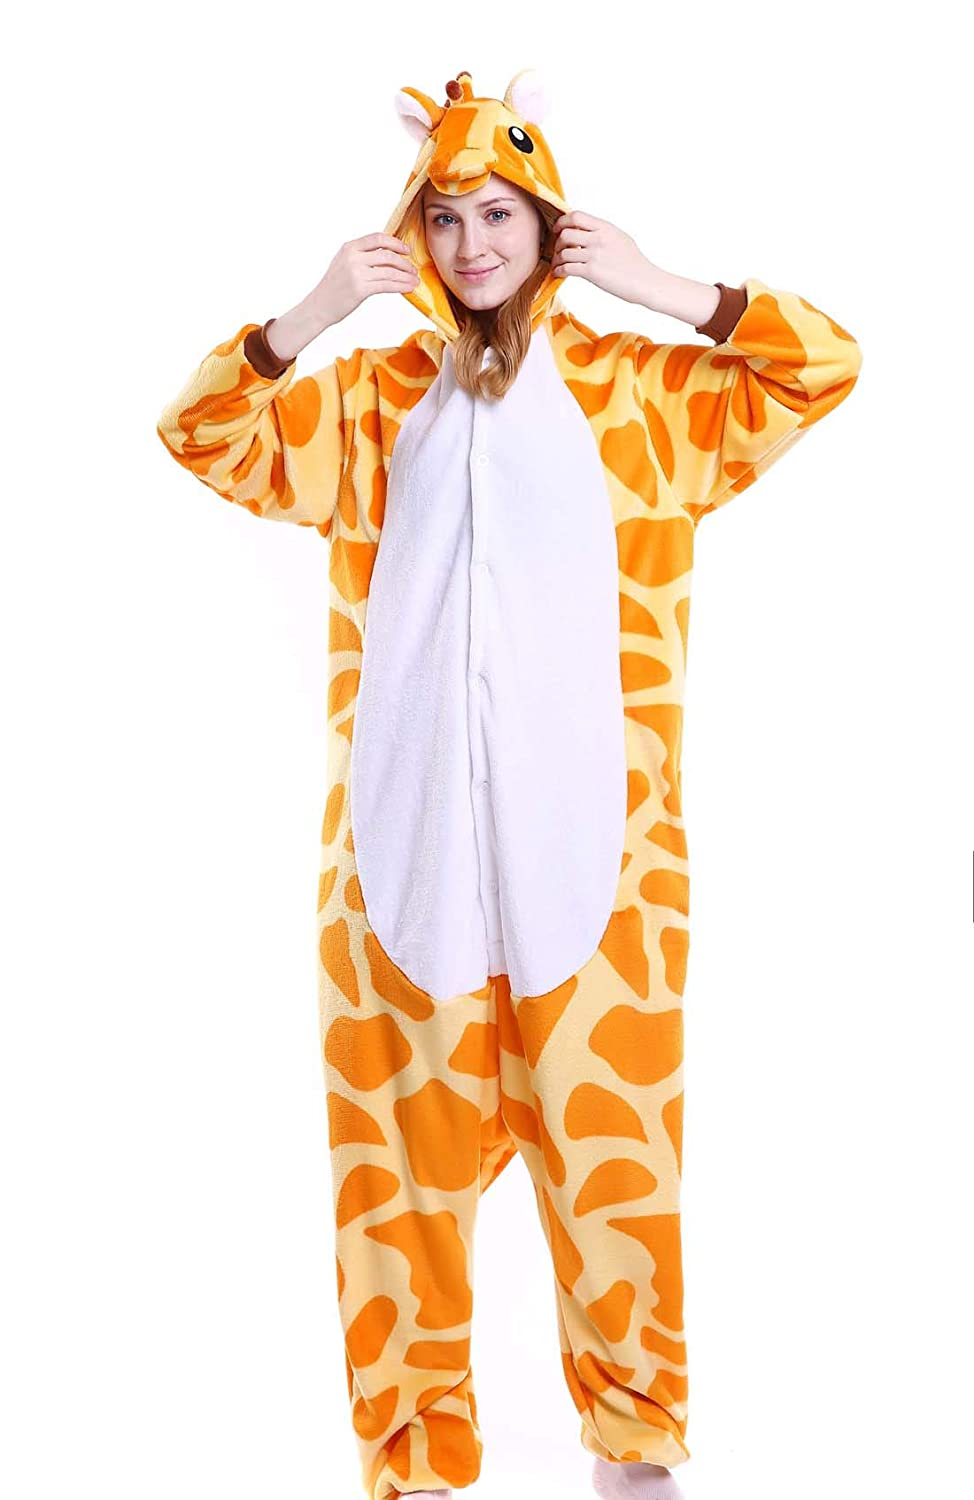 Royal Unicorn Adult/&Kids Onesi1 Kigurumi Pajamas Animal Onsies Costume Cosplay